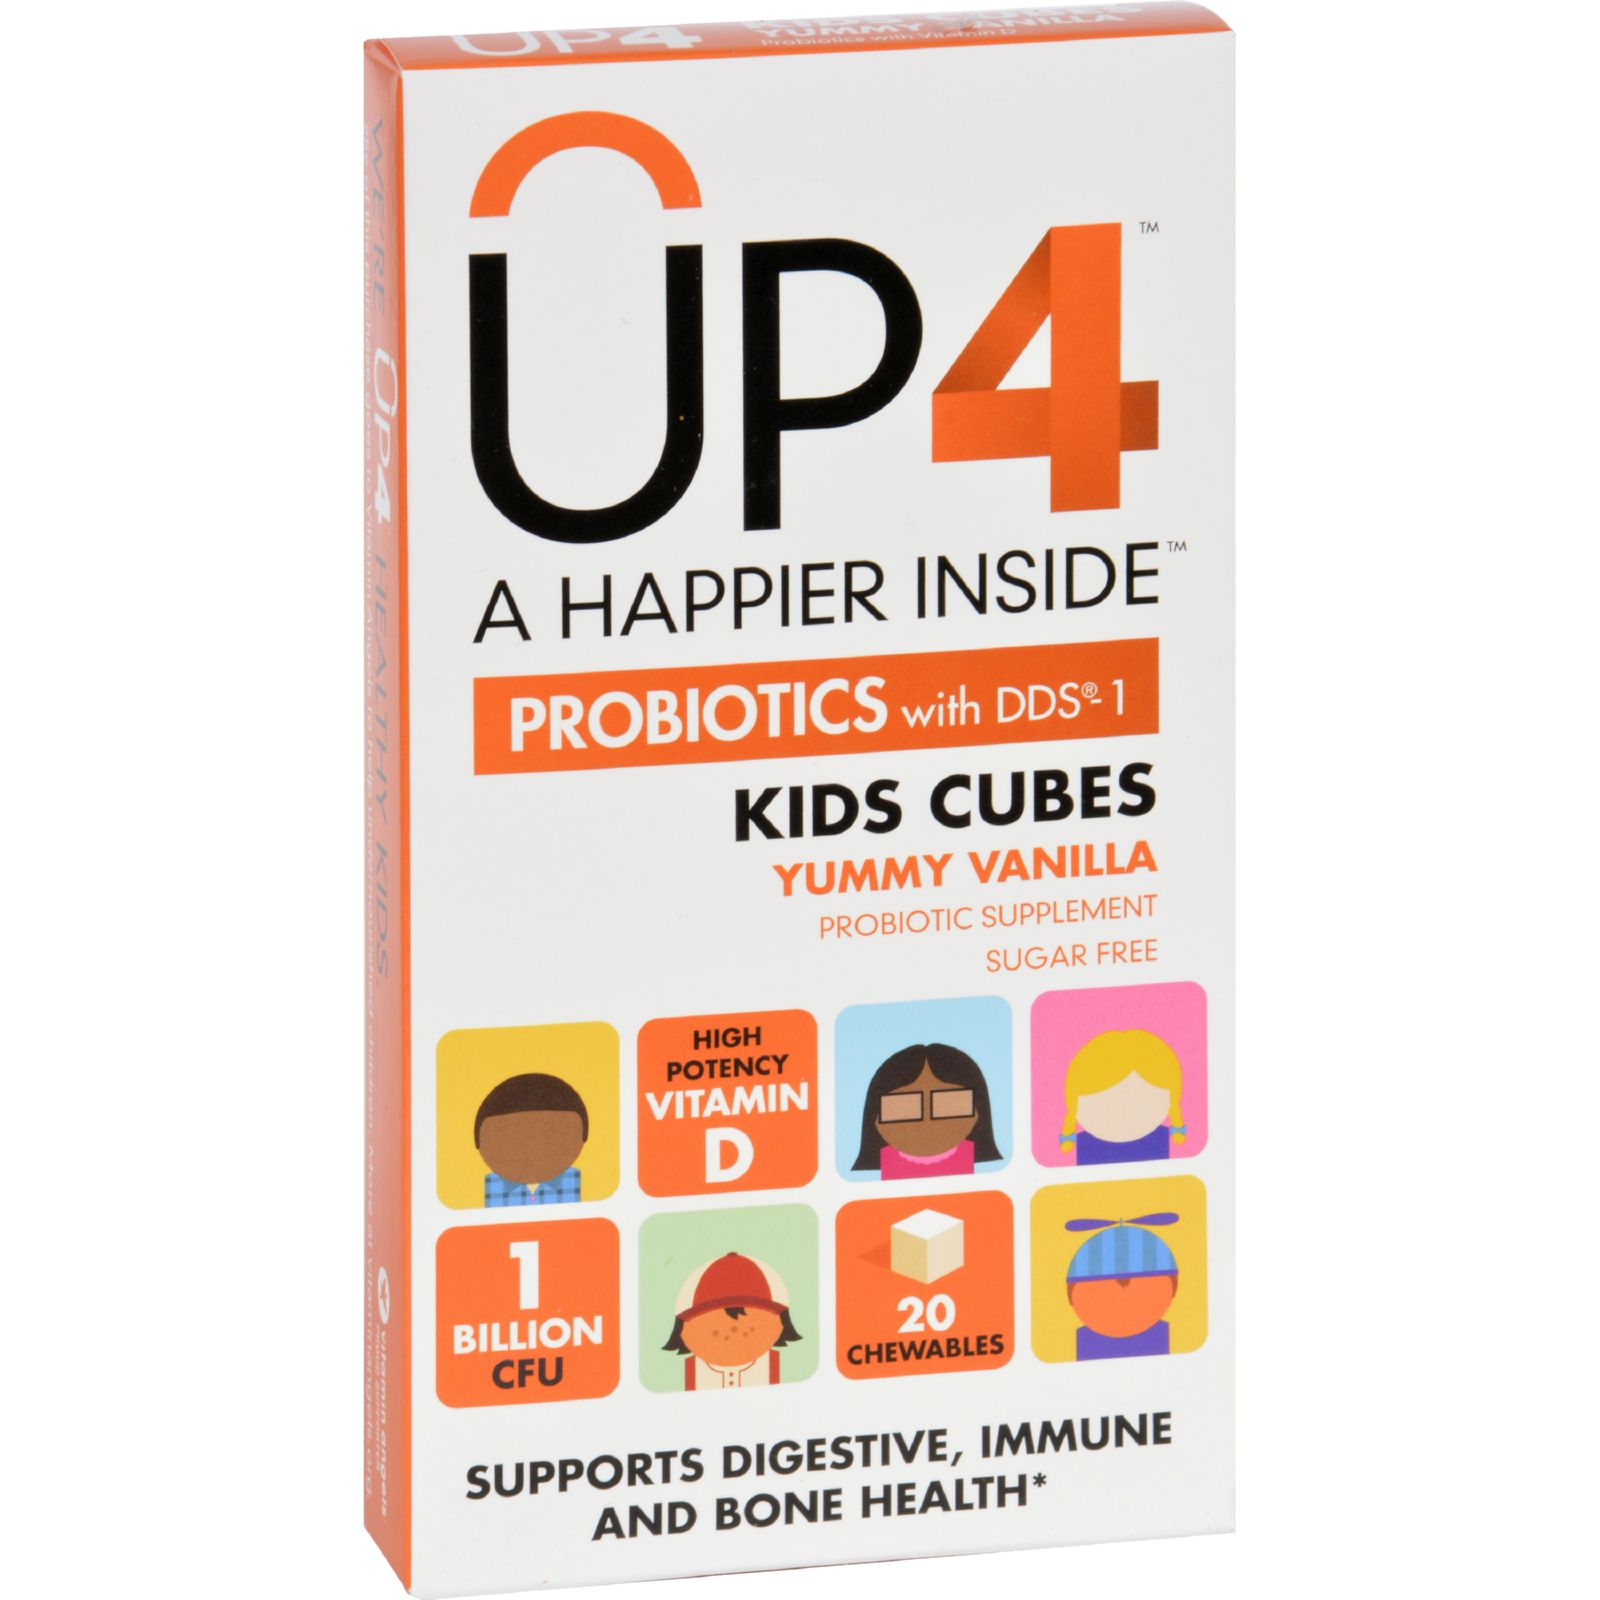 Up4 Probiotics Probiotic Supplement - Kids Cubes - Yummy Vanilla - 20 Chews - Case of 8